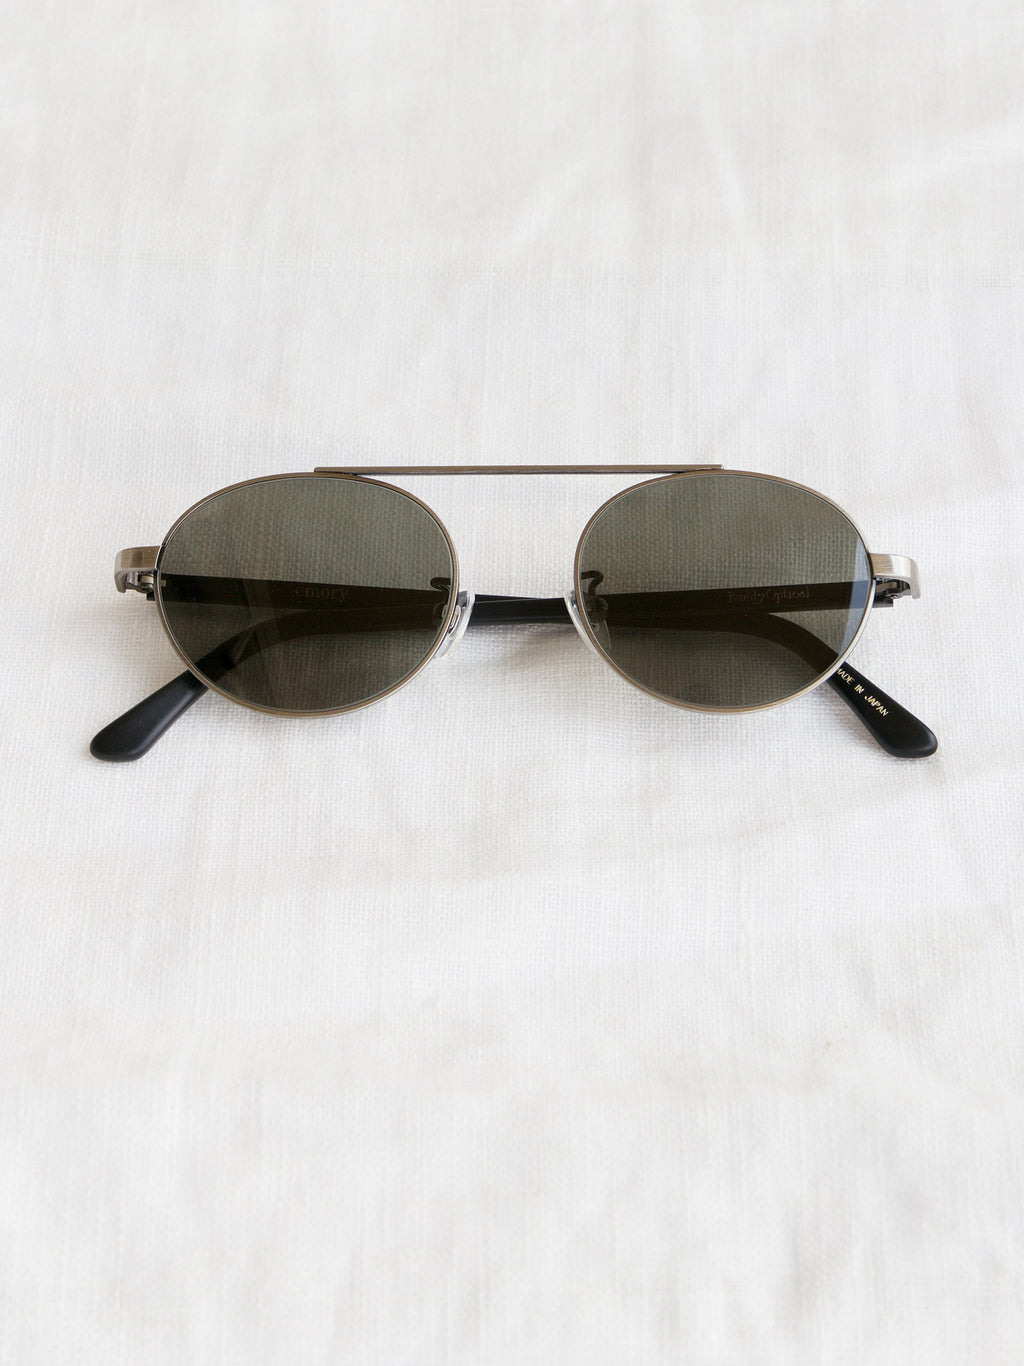 Namu Shop - Buddy Optical Emory - Brushed Silver